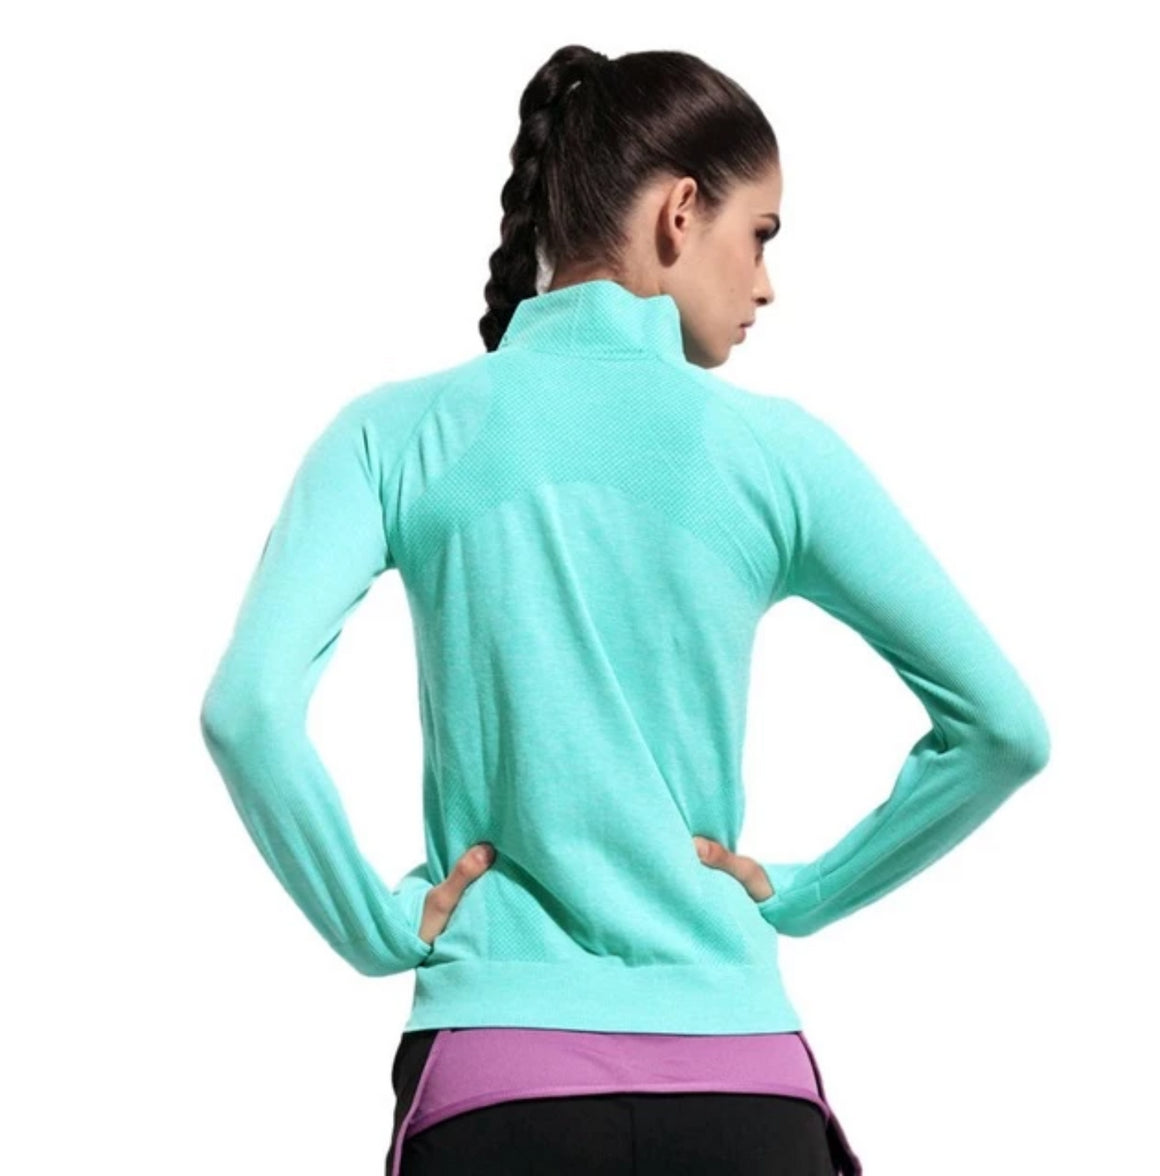 B.BANG Women Quick Dry Sport Jackets Long-sleeved Sweatshirt for Woman Clothes for Running Fitness Sport Zipper Fleece Outerwear